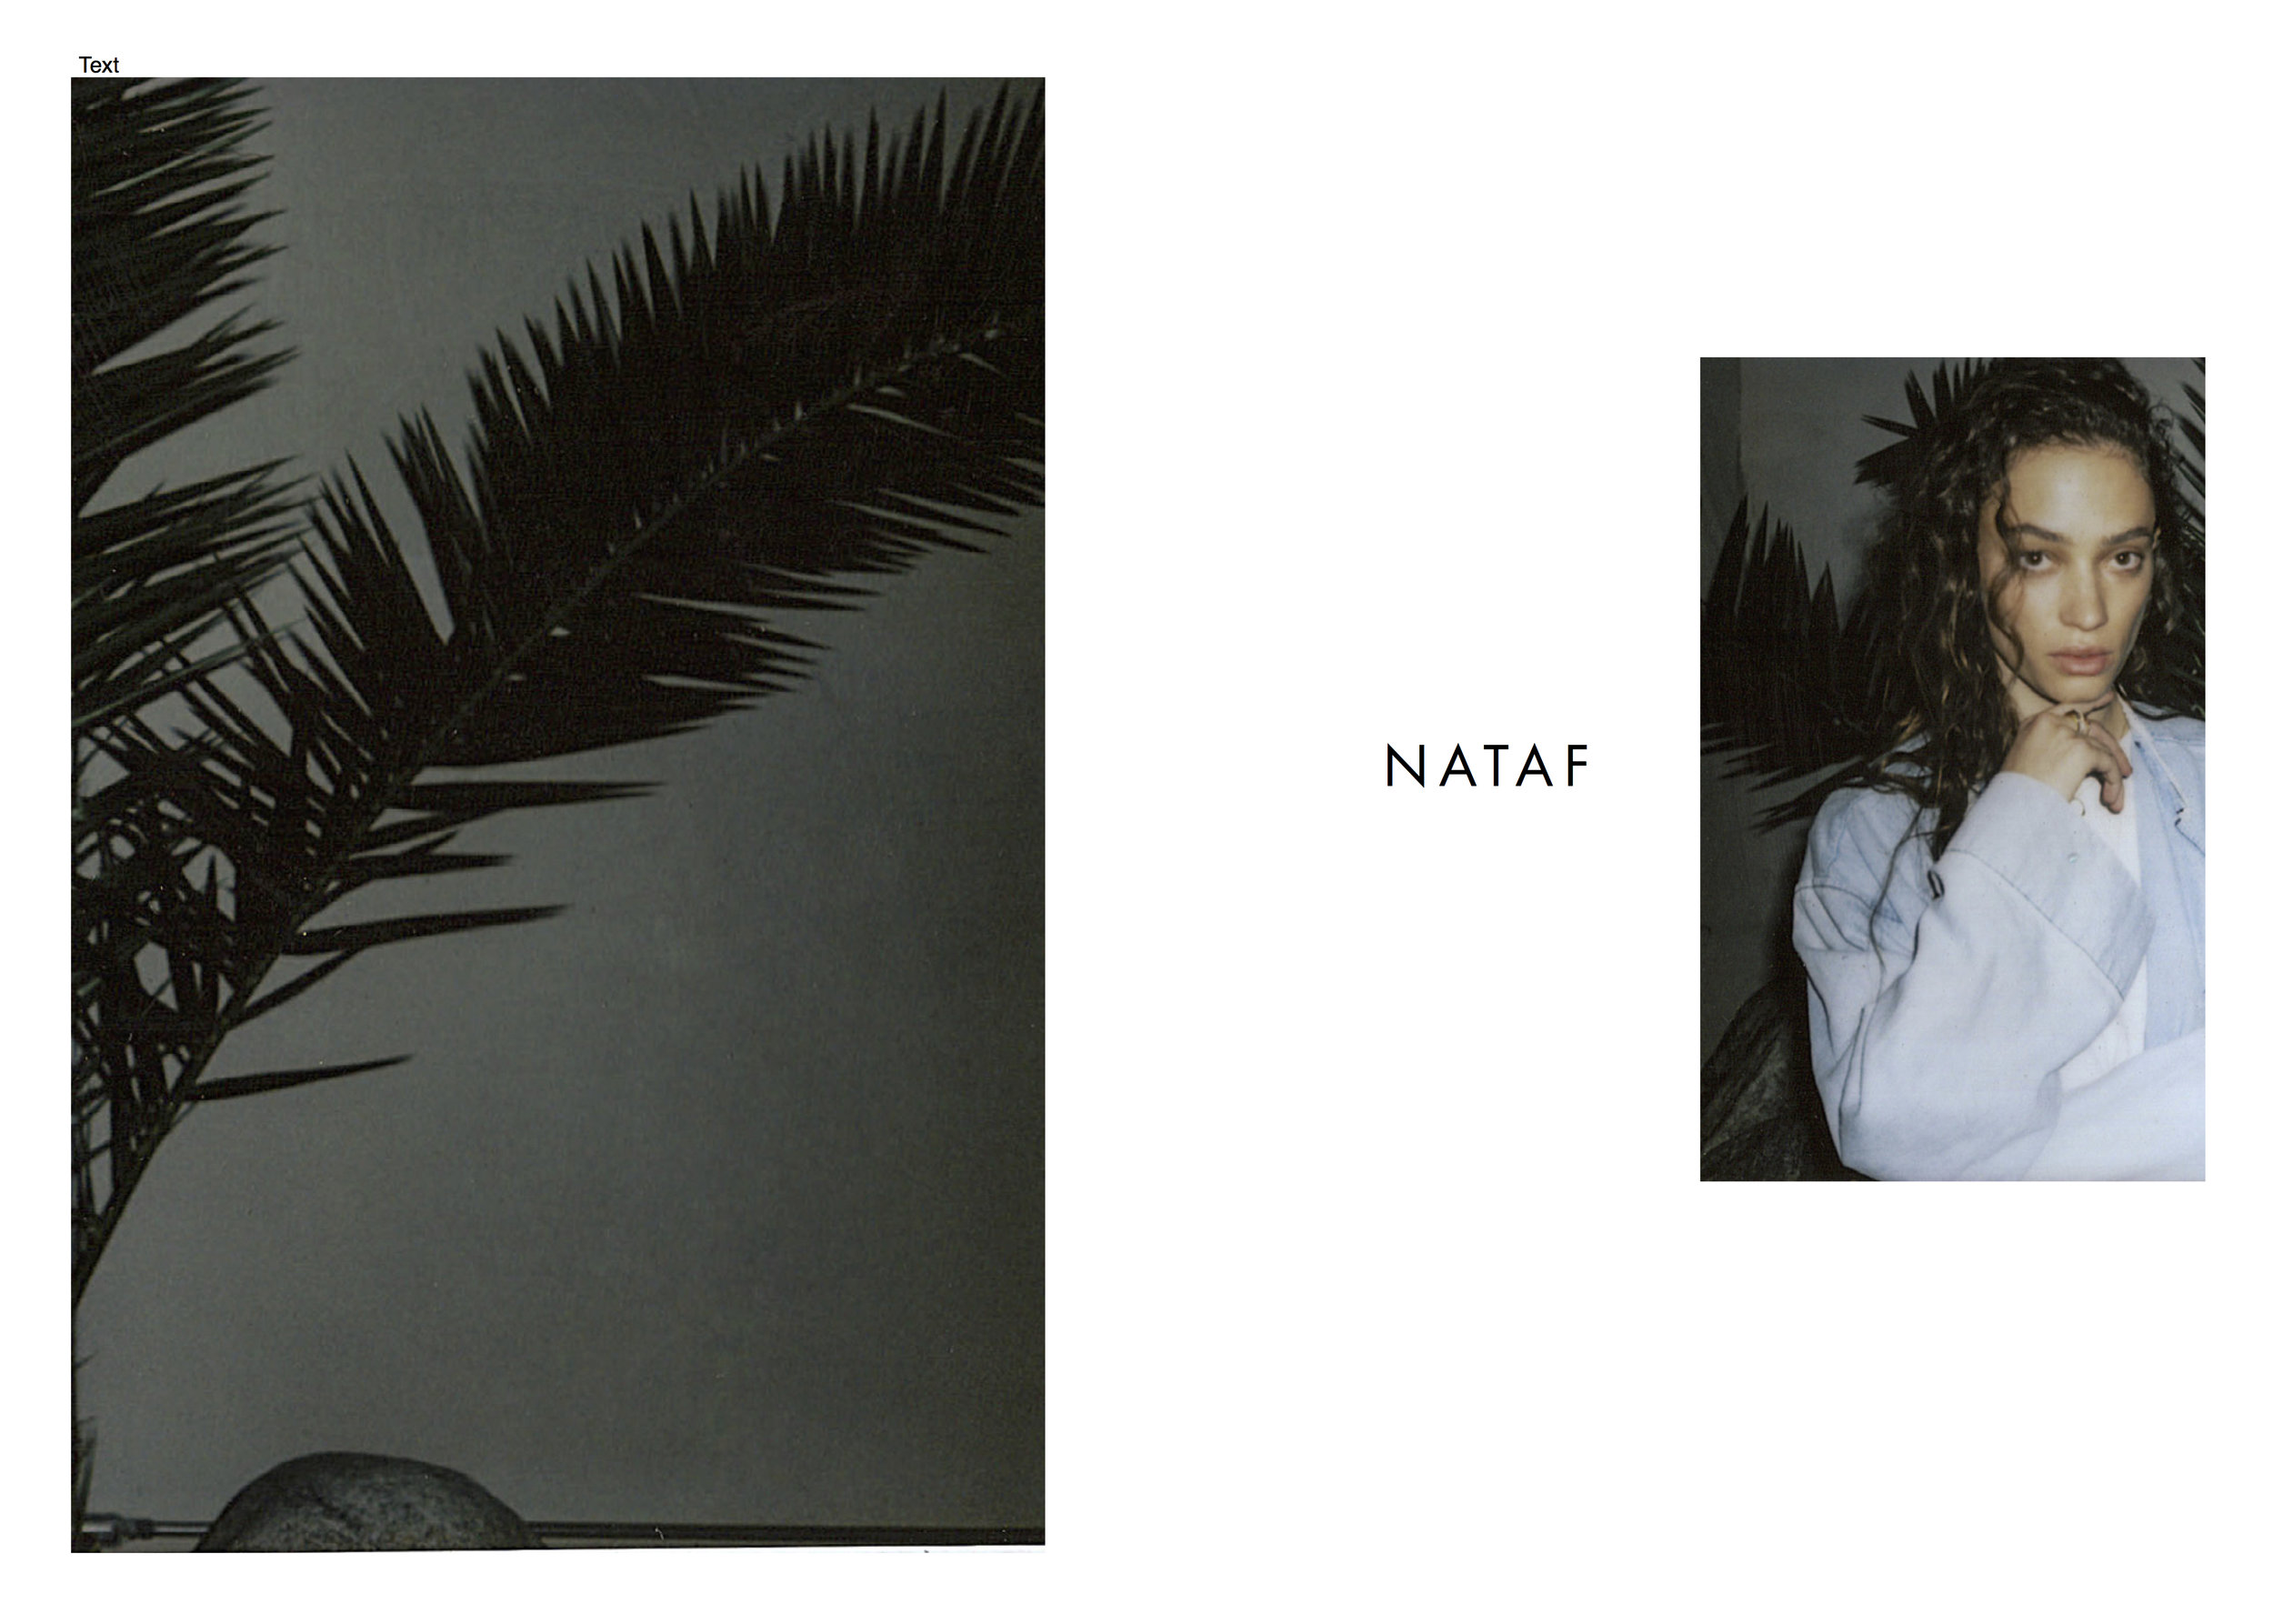 NATAF Joaillerie - Round 1 - Digital Lookbook 1.jpg